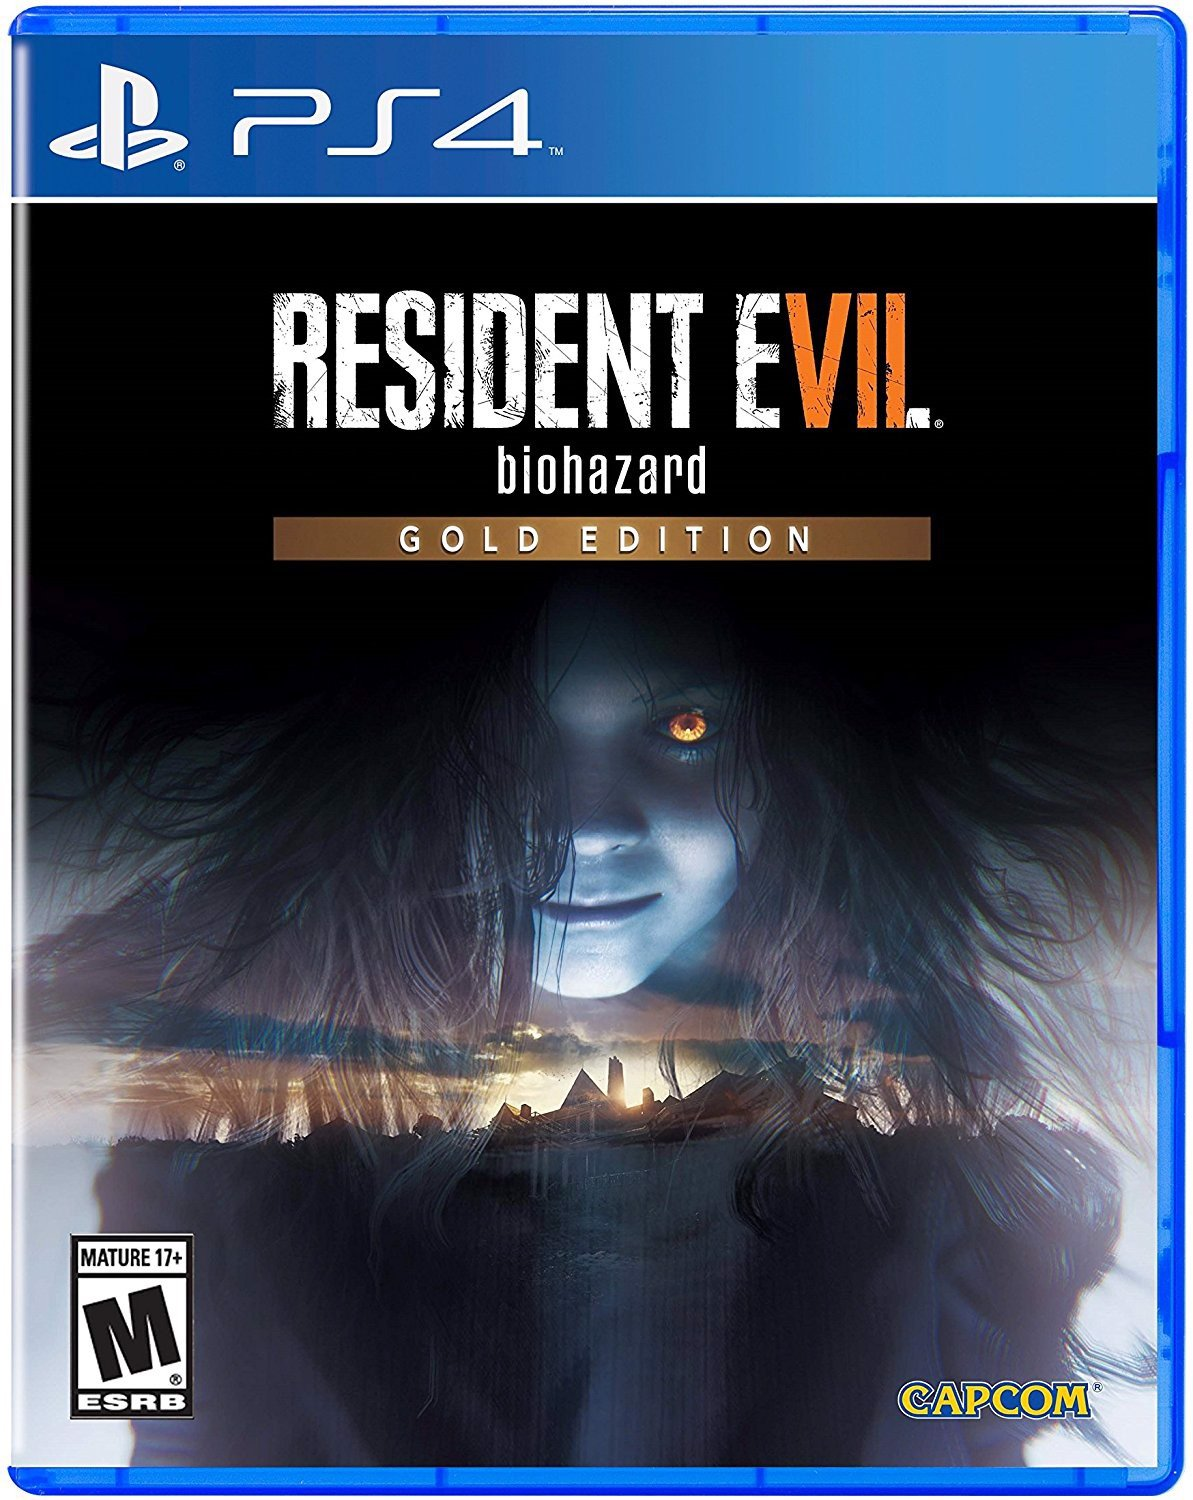 530 - Resident Evil 7 biohazard Gold Edition